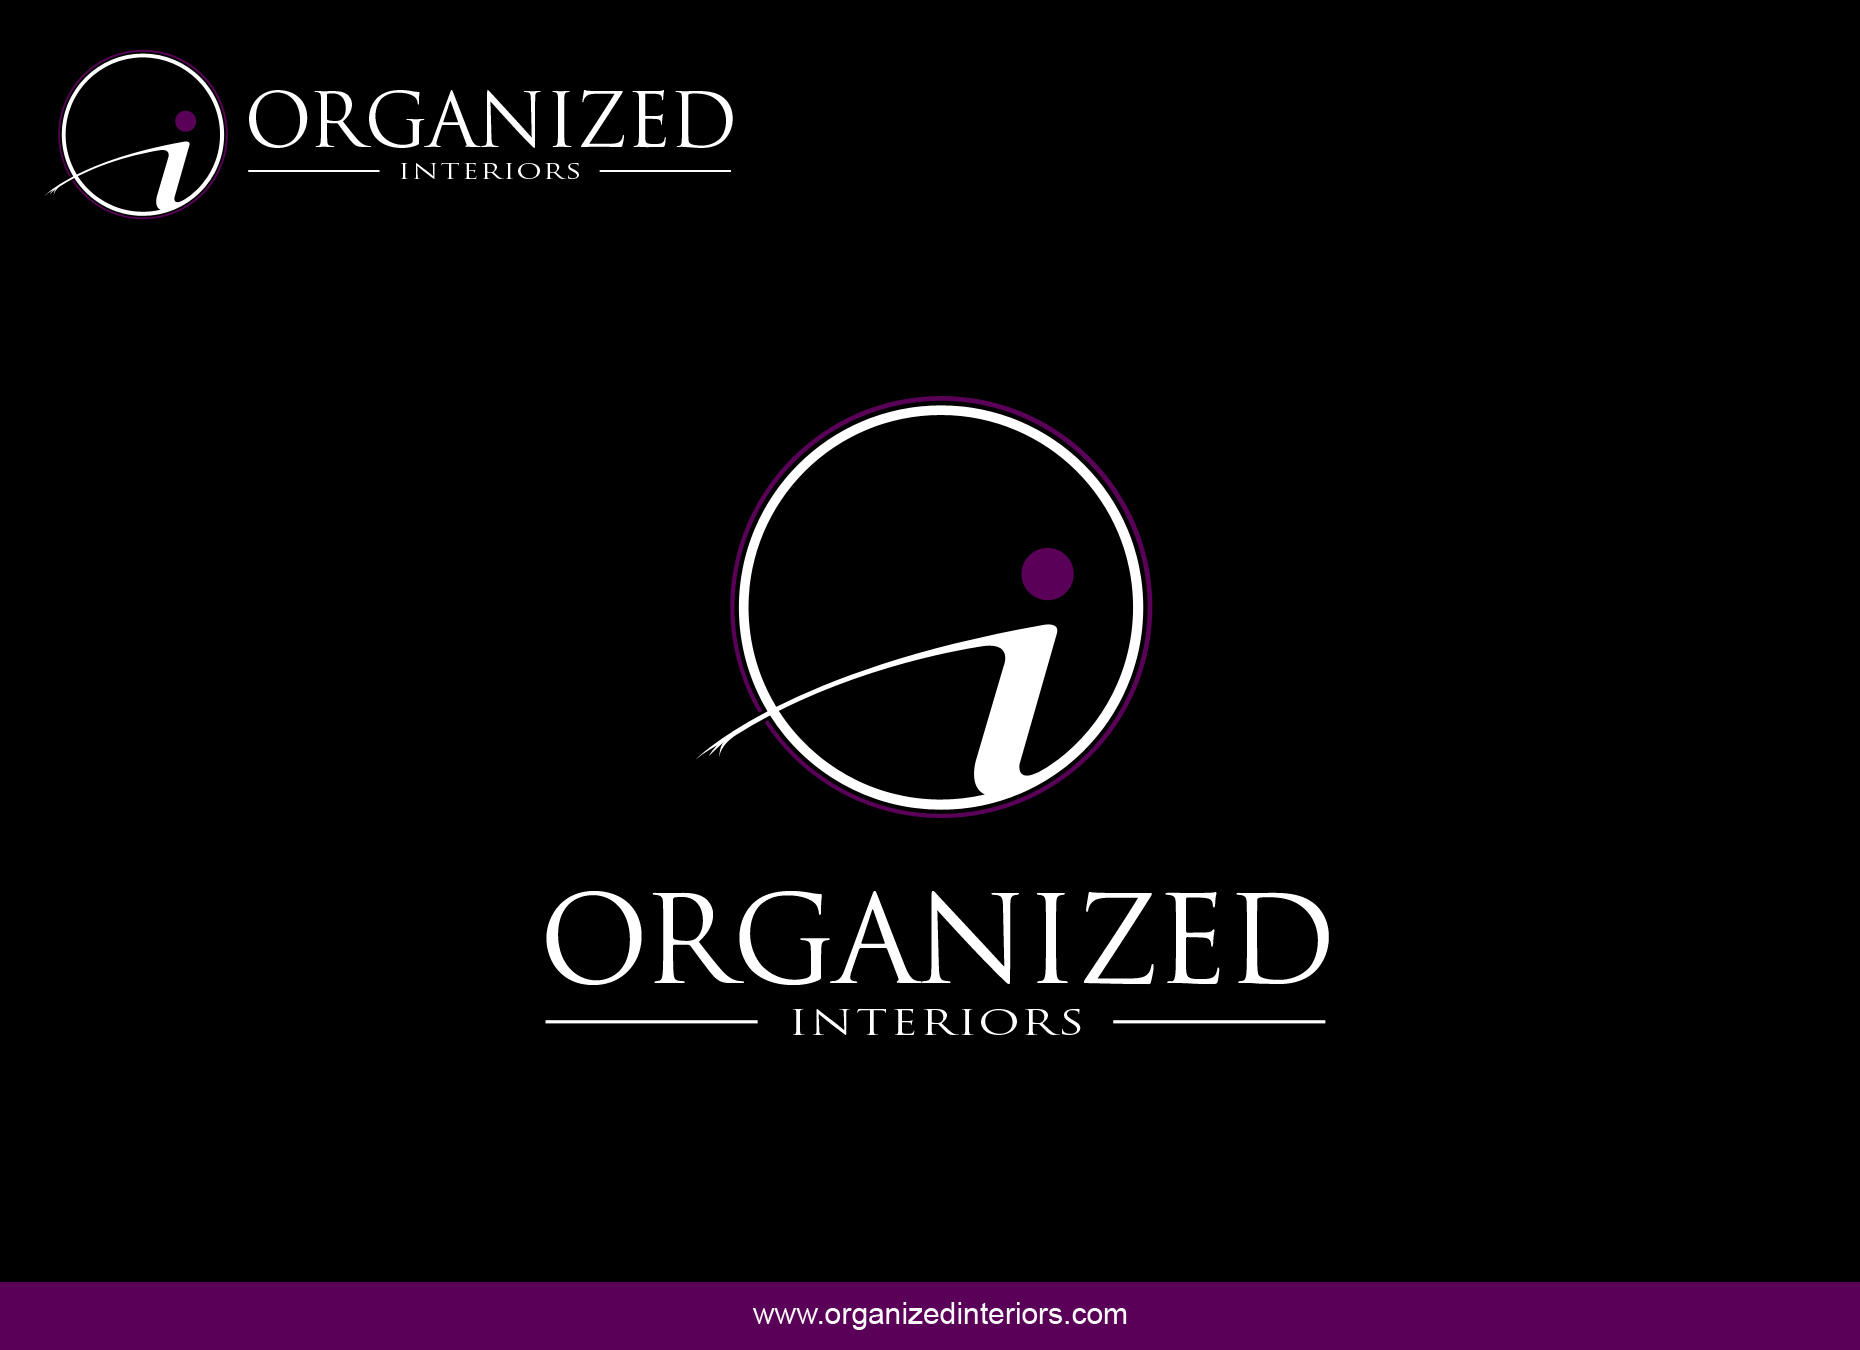 Logo Design by omARTist - Entry No. 138 in the Logo Design Contest Imaginative Logo Design for Organized Interiors.